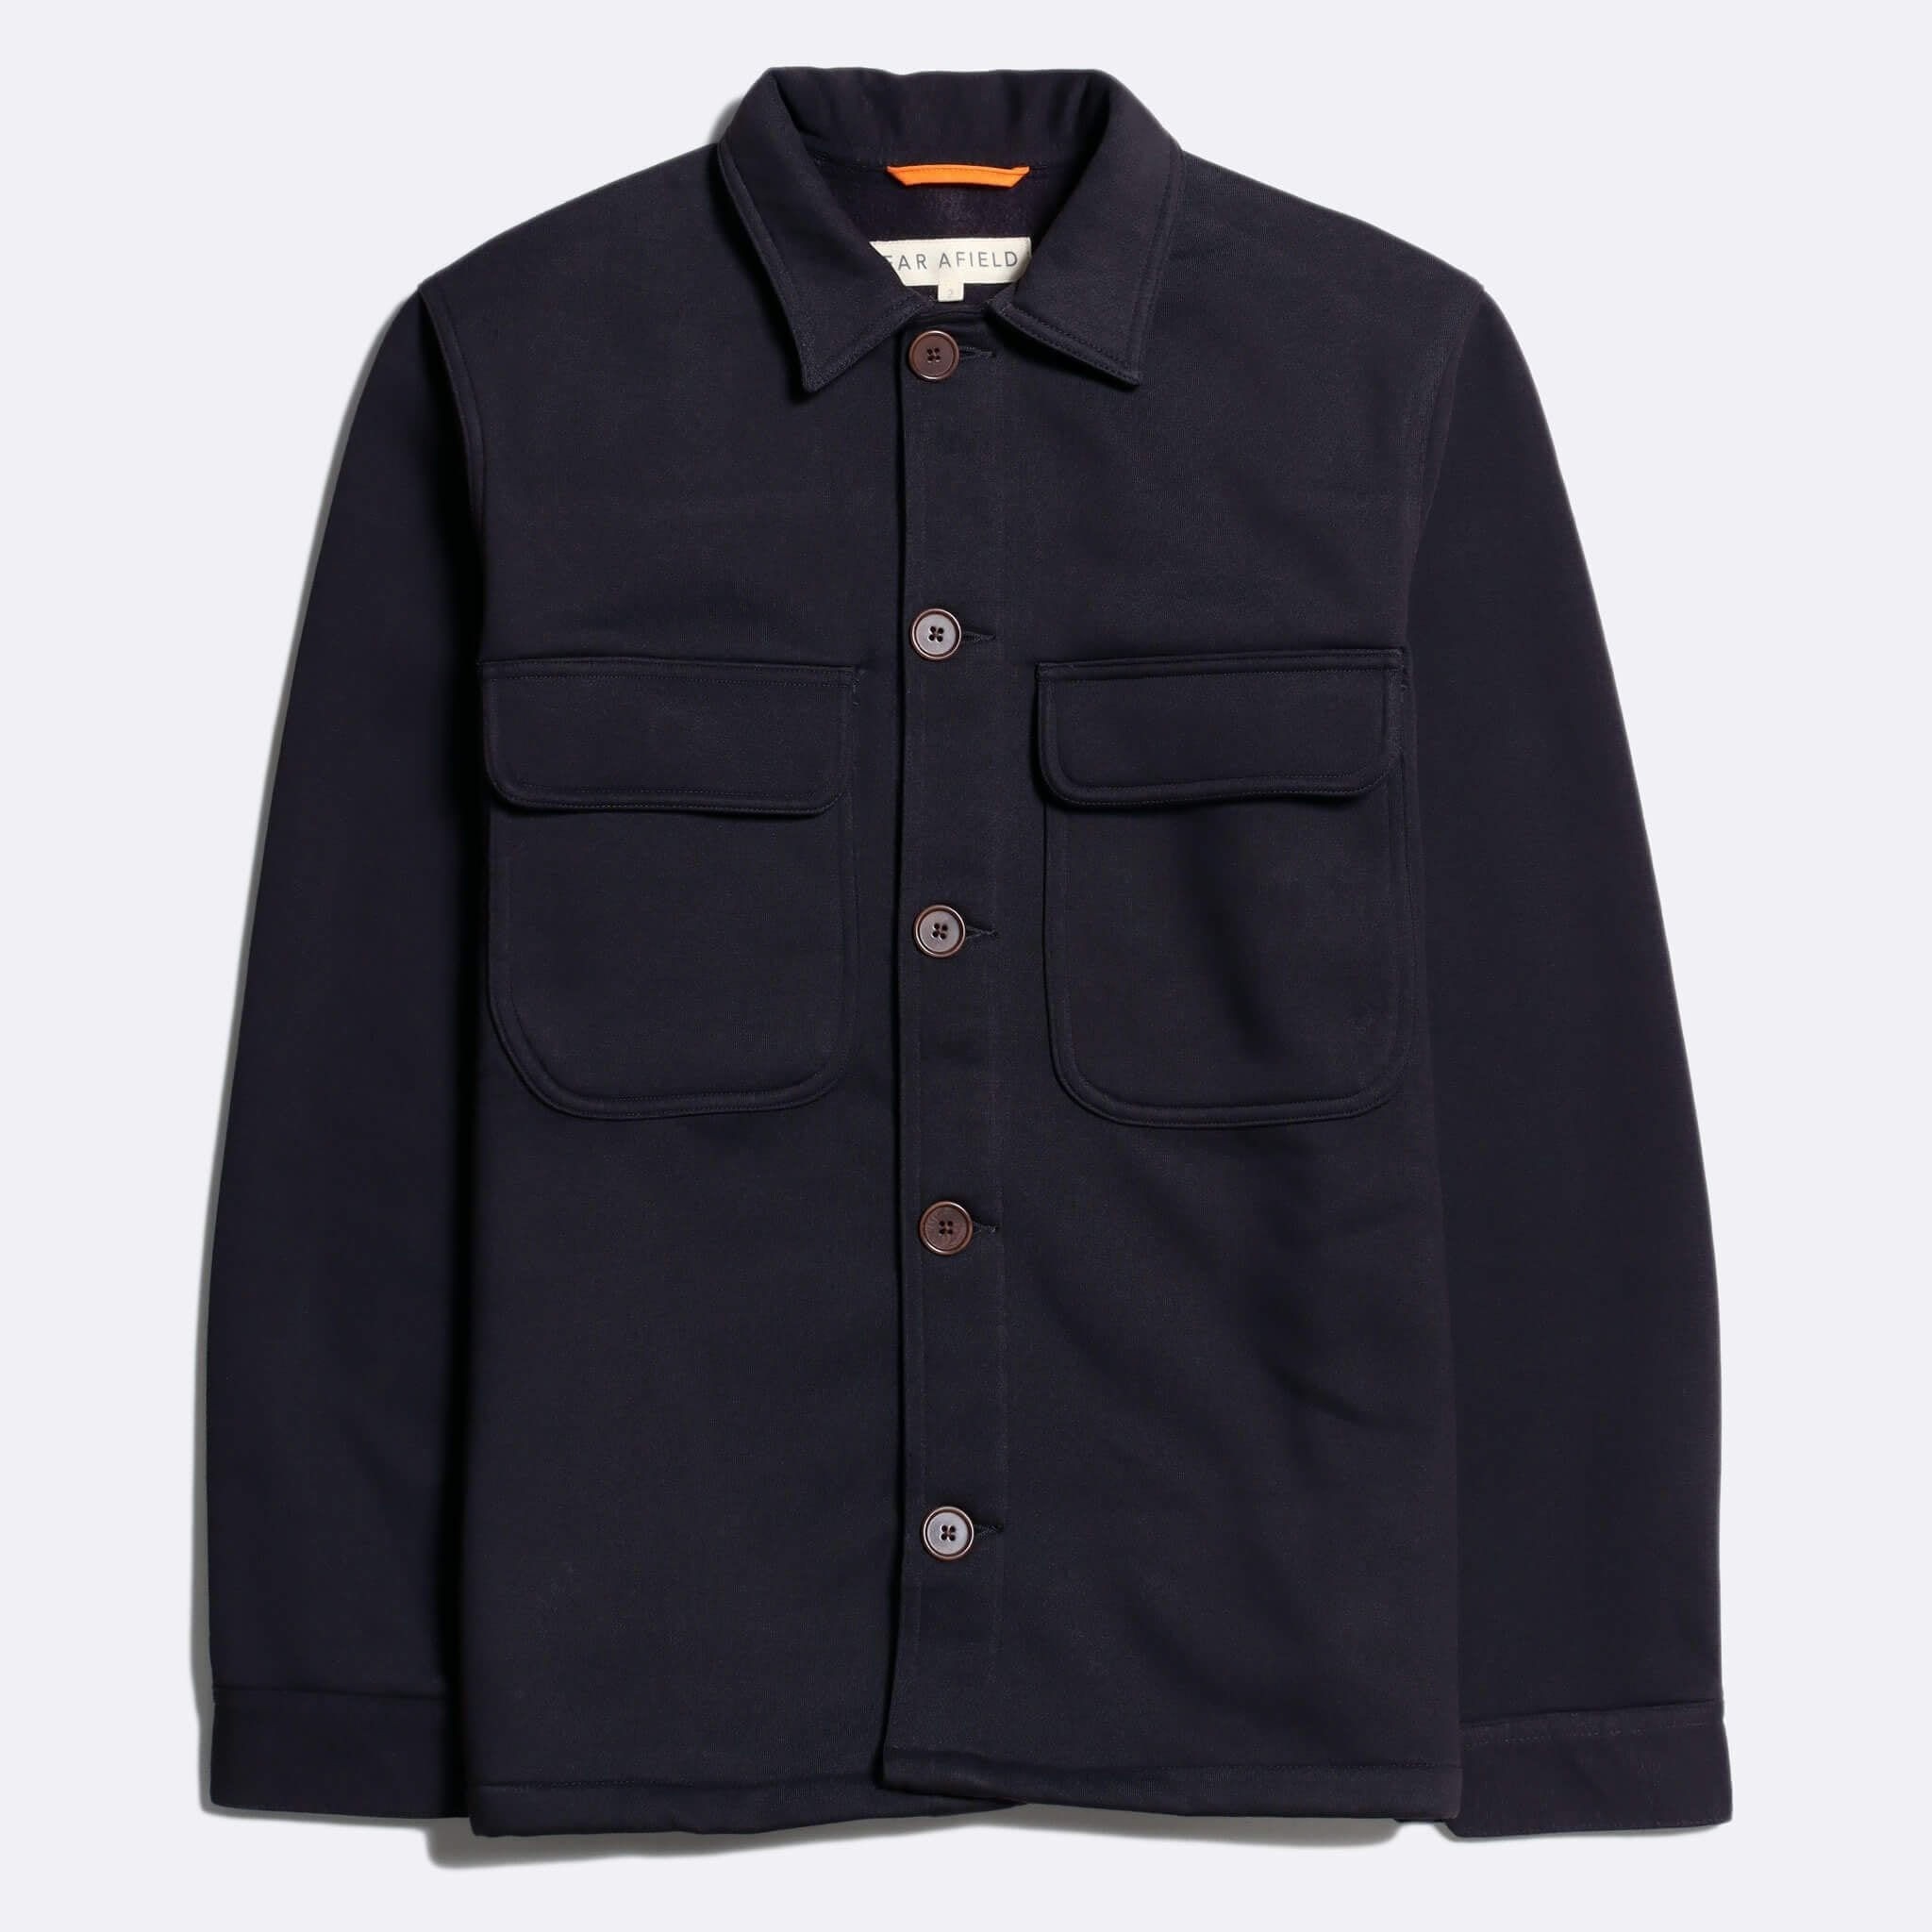 Far Afield Normsk Jacket a Navy BCI Cotton Fabric/Poly Fleece Utility Overshirt Casual Work